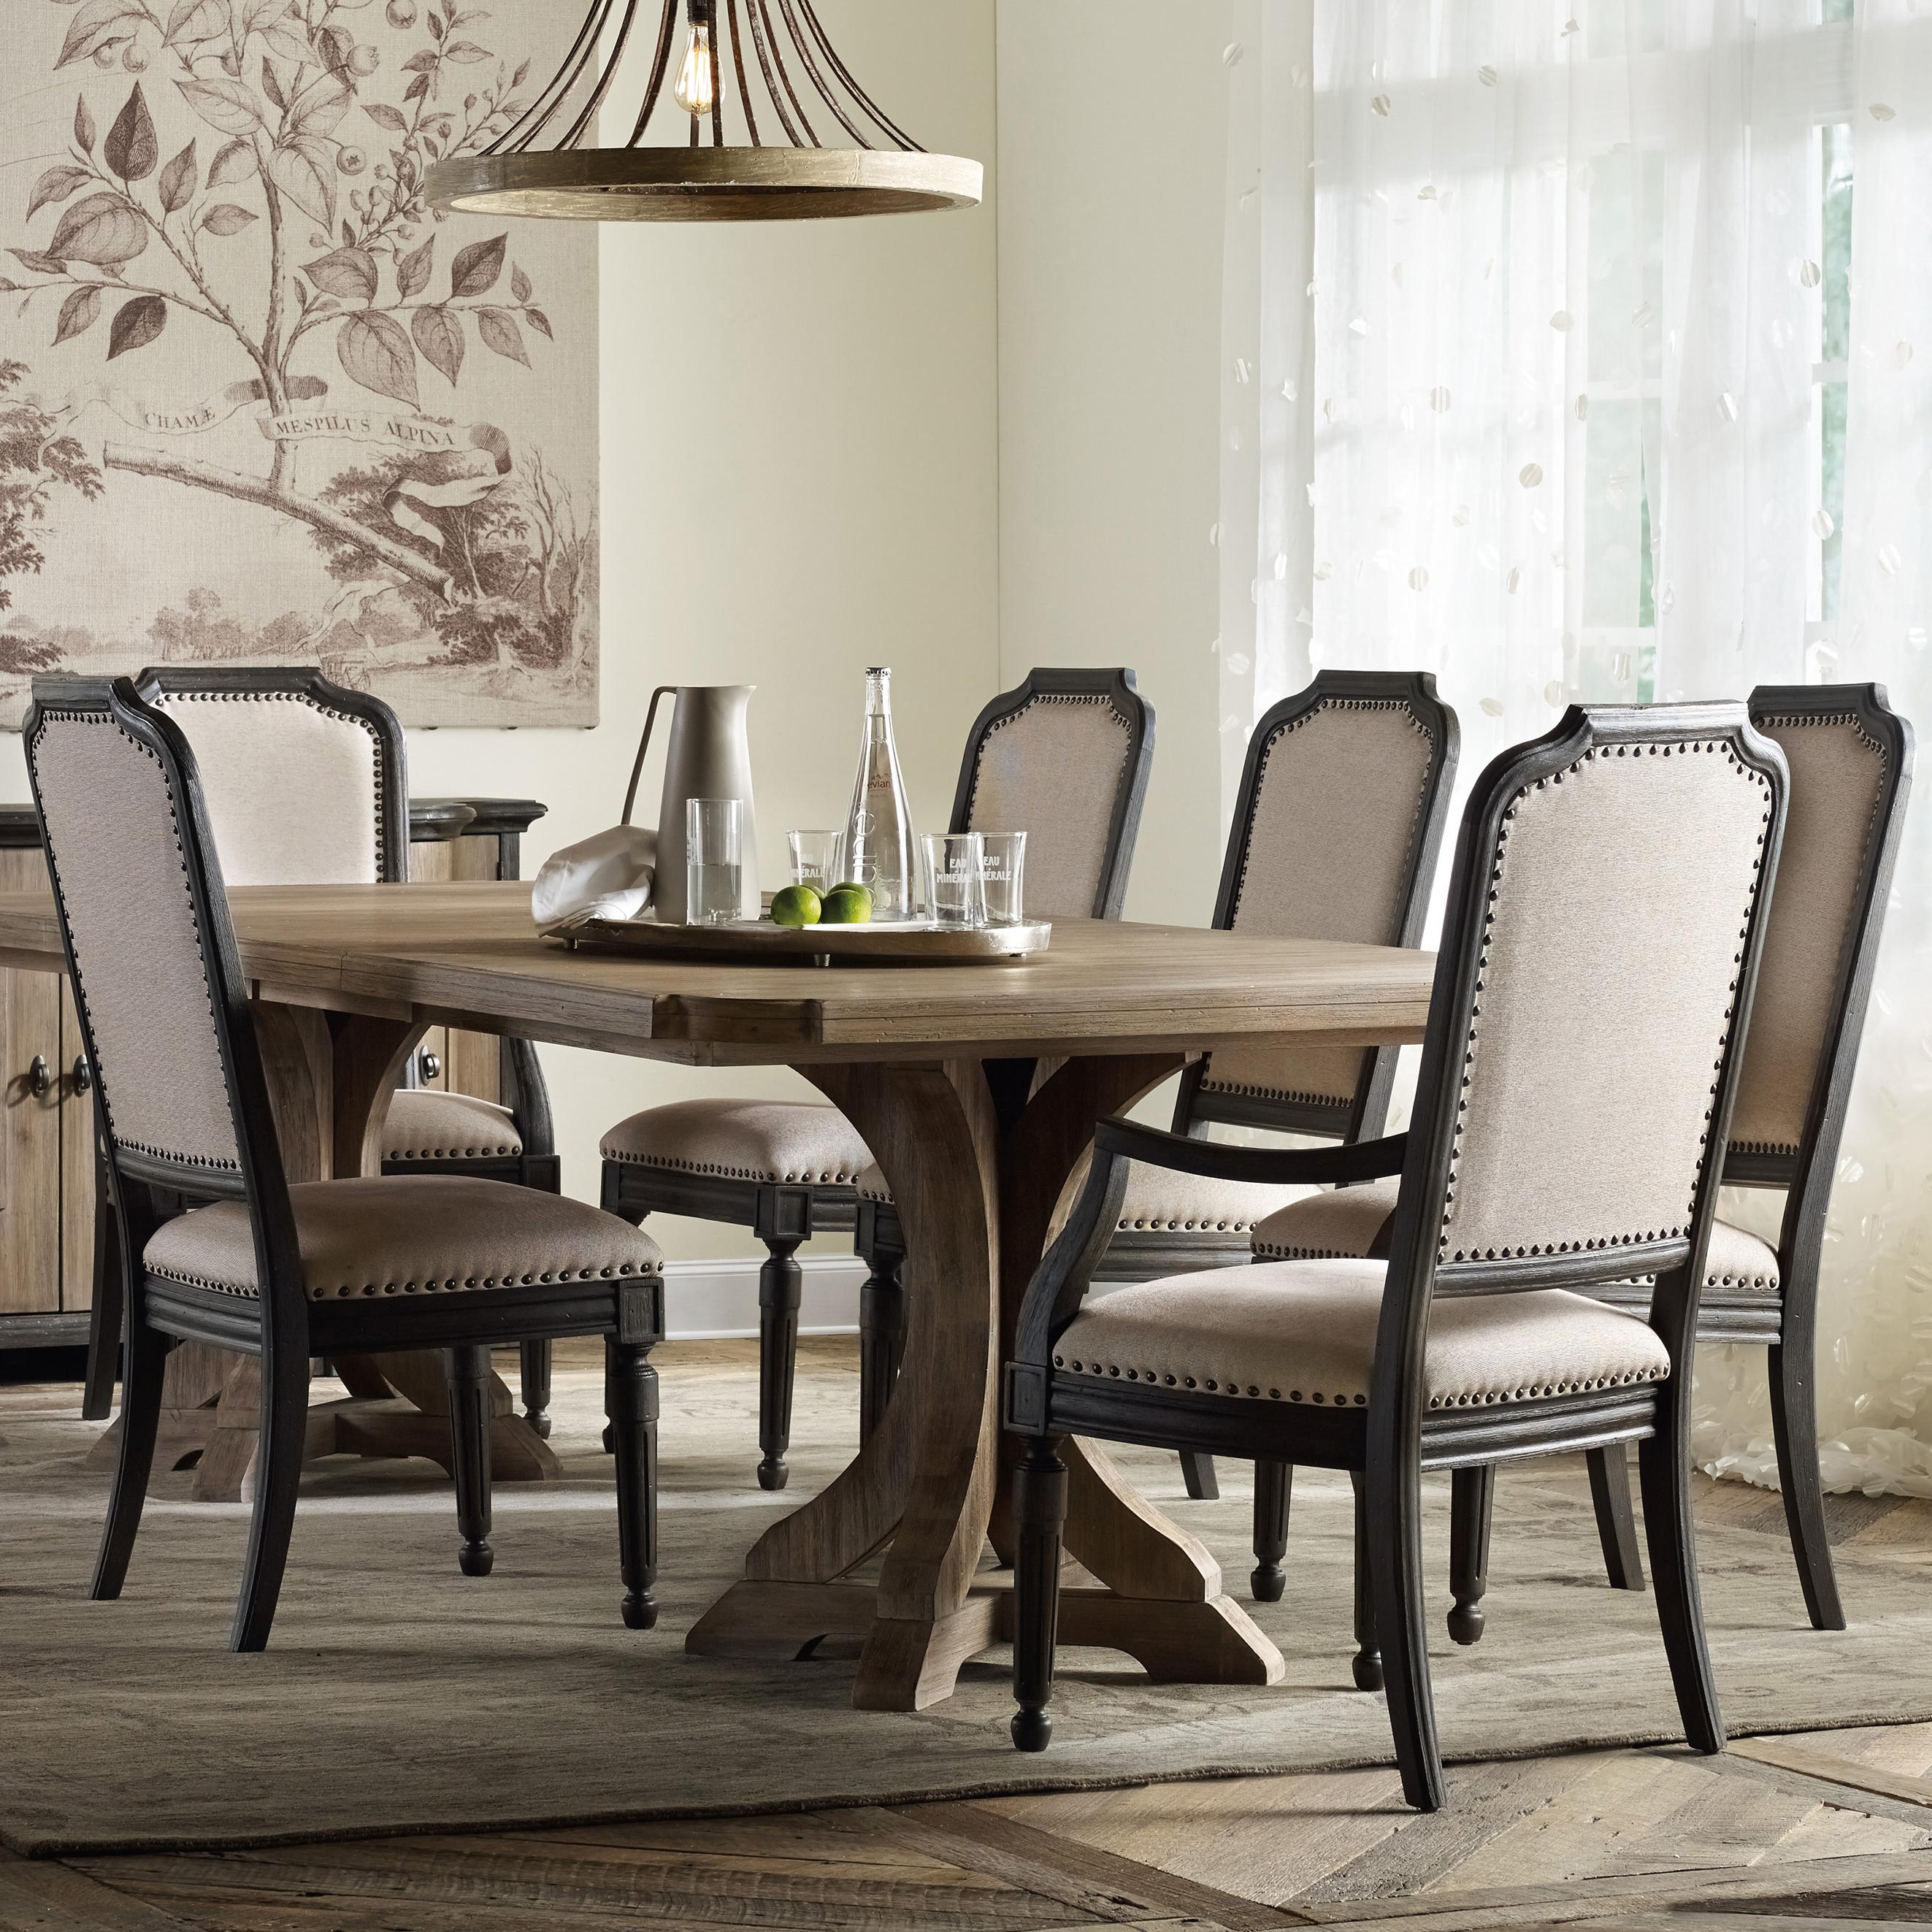 Corsica Rectangle Pedestal Dining Table Set by Hooker Furniture at Miller Waldrop Furniture and Decor